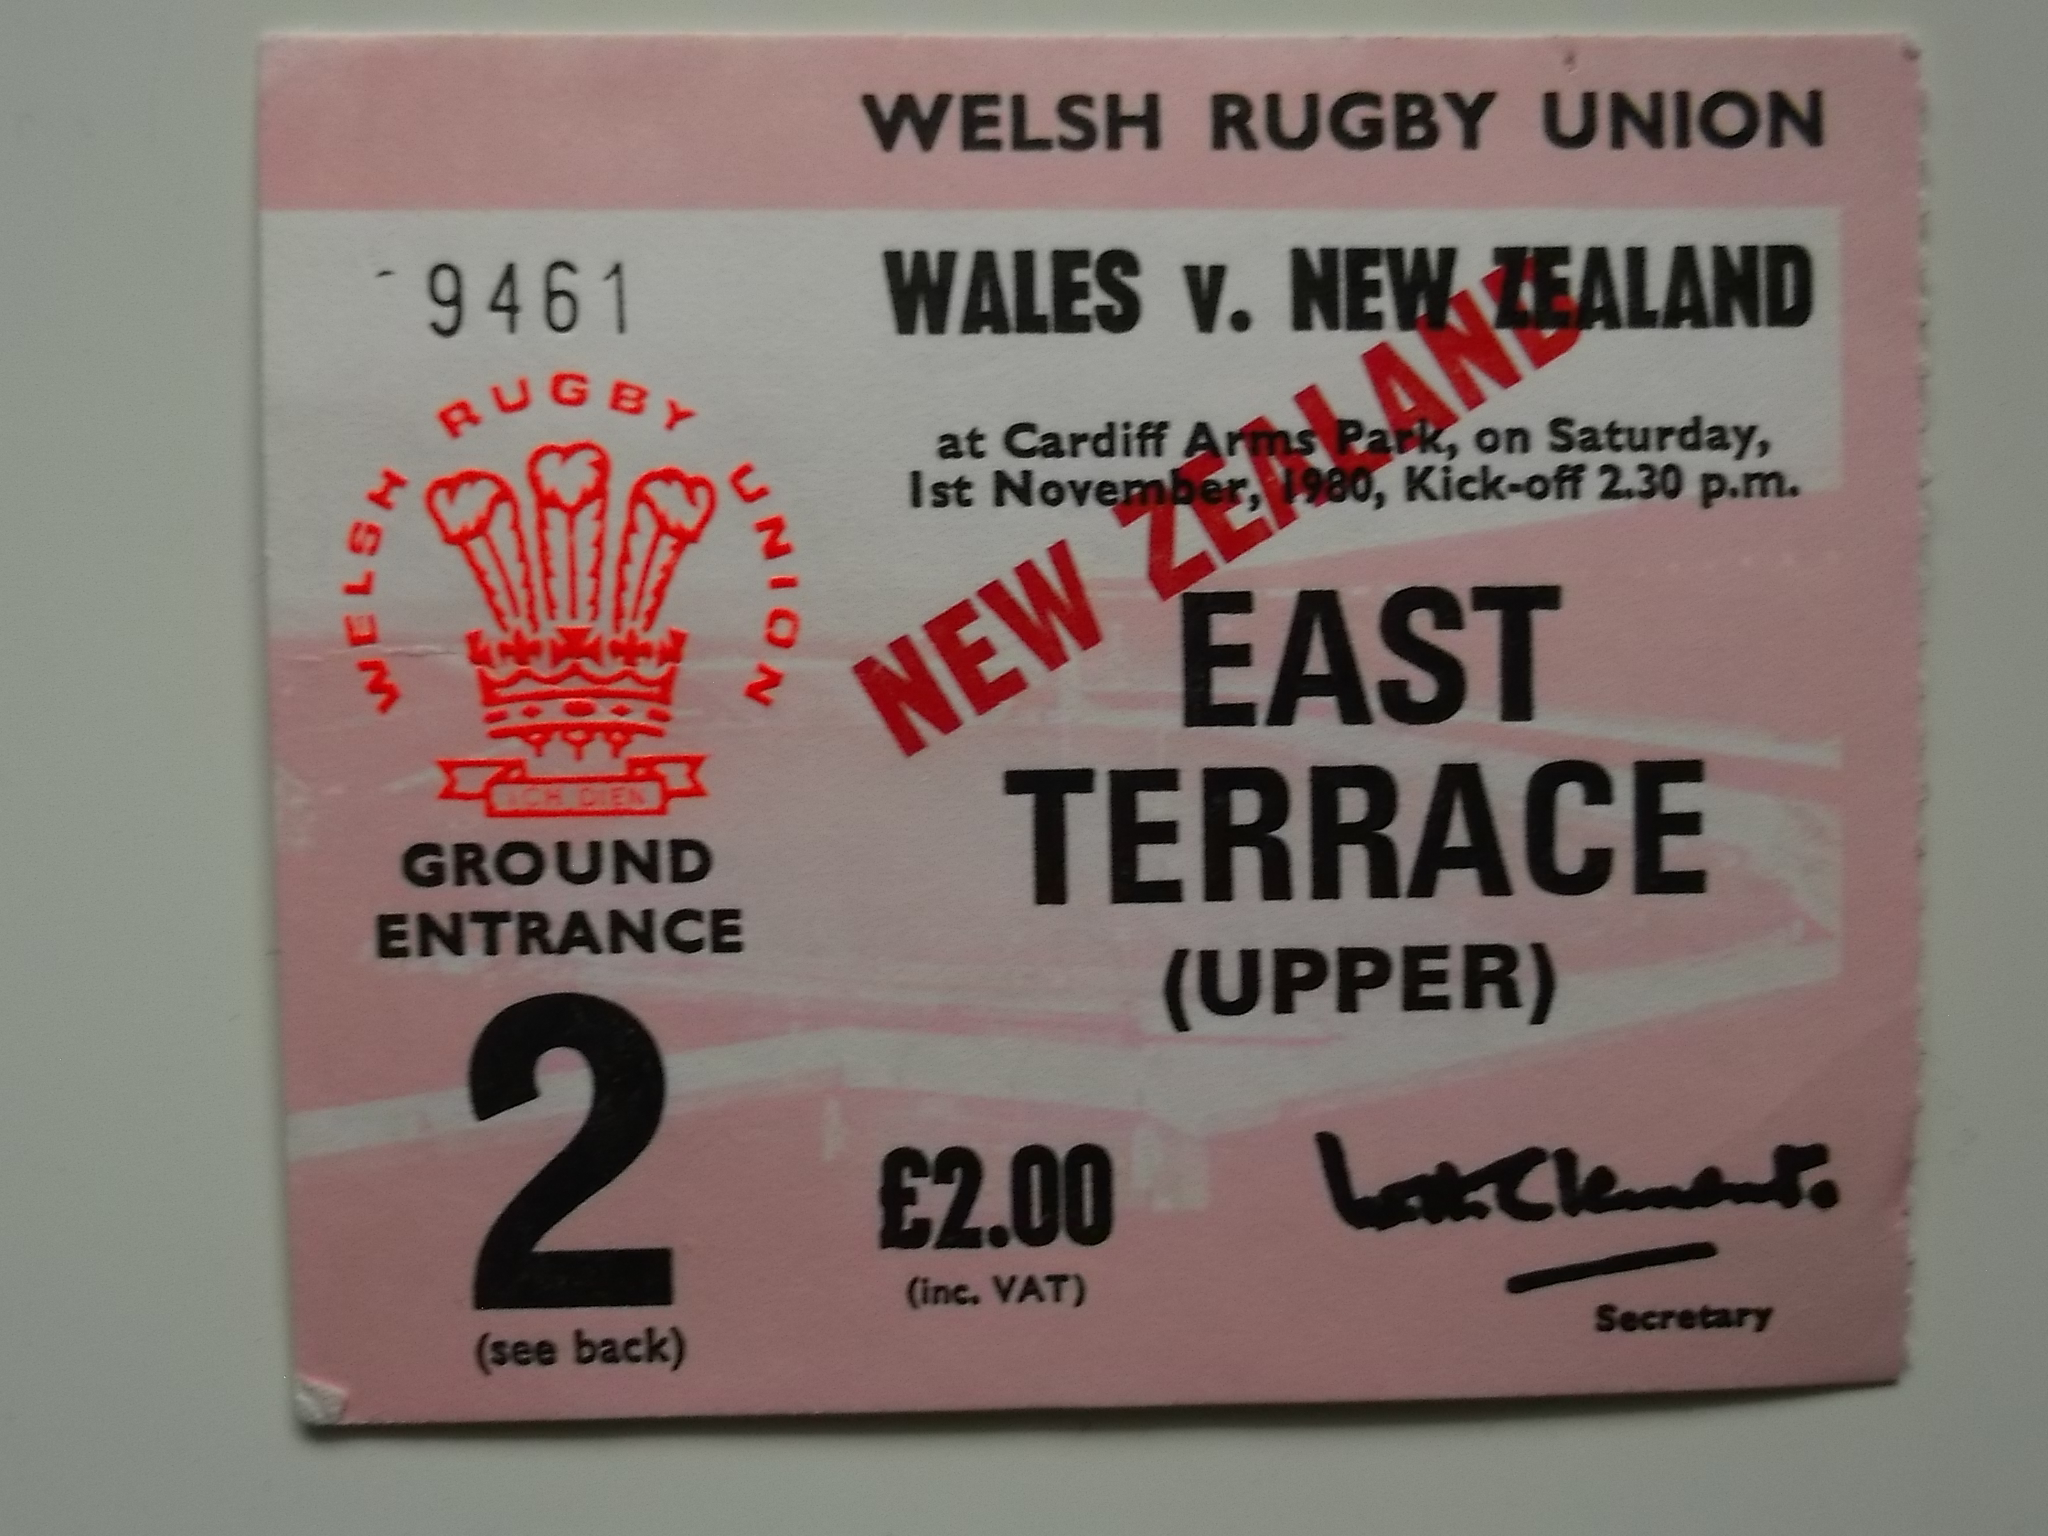 RUGBY UNION - 1980 WALES V NEW ZEALAND PROGRAMME + TICKET - Image 2 of 2